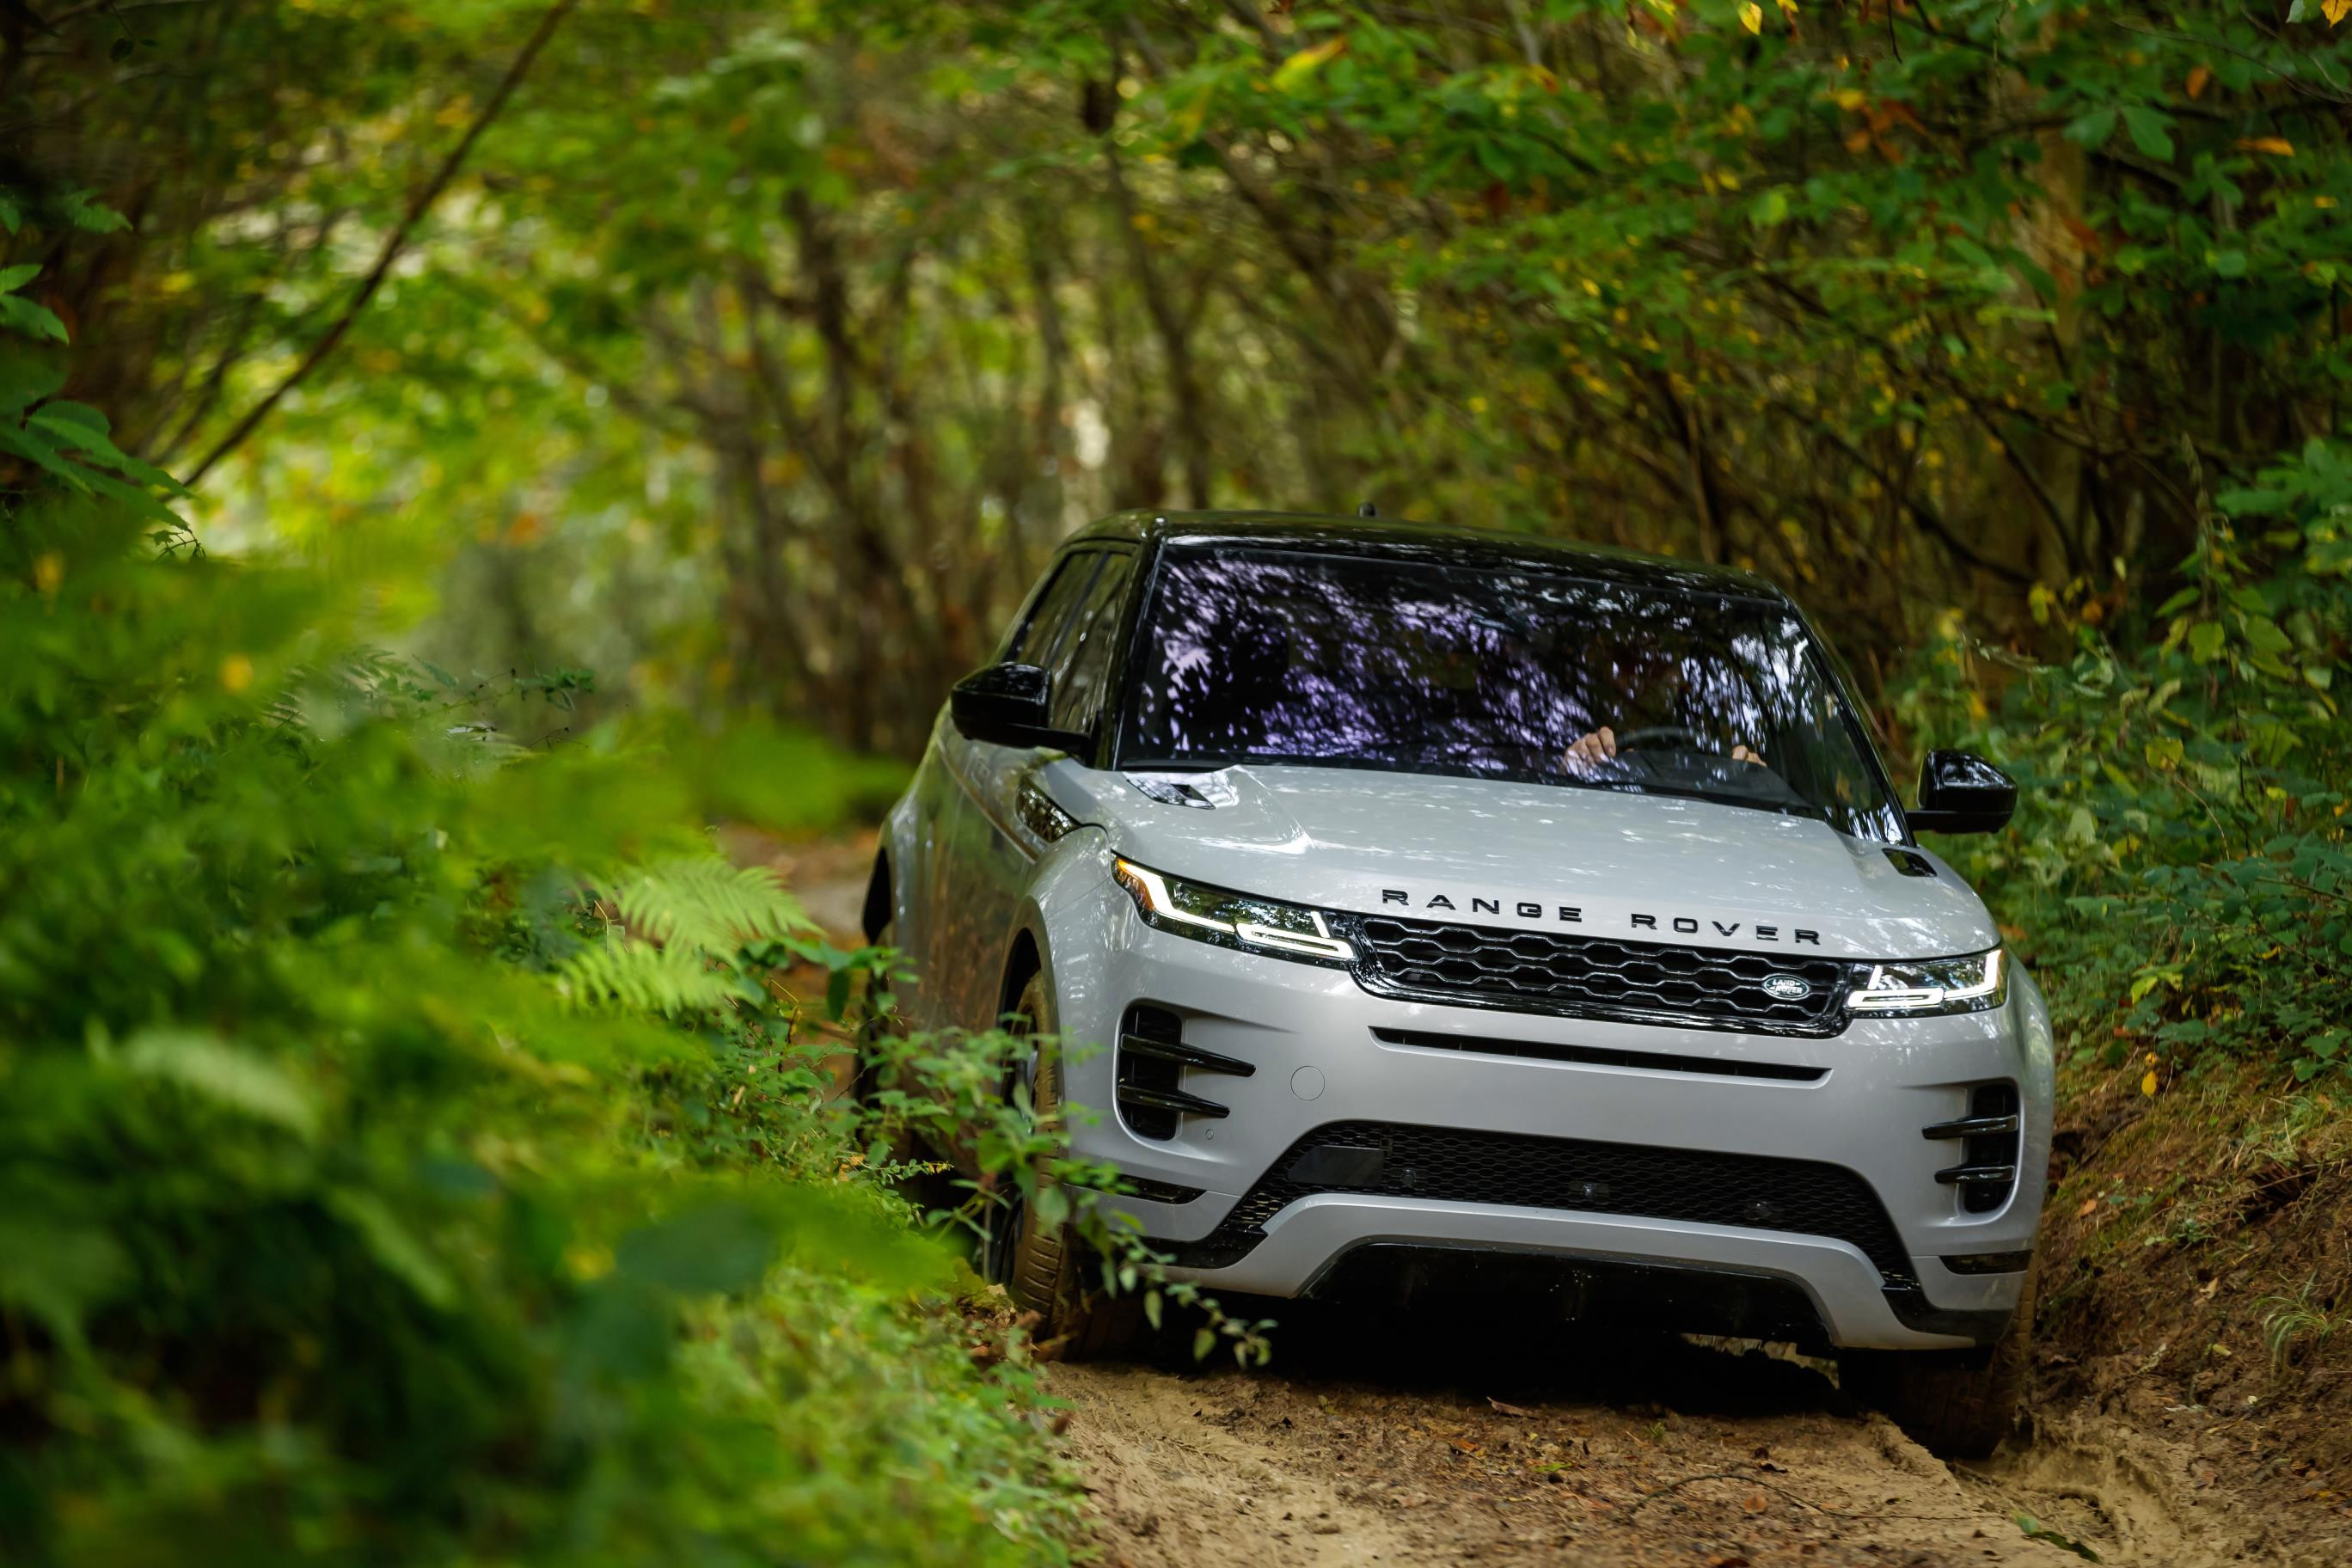 Pale grey Range Rover Evoque driving off-road through a leafy forest